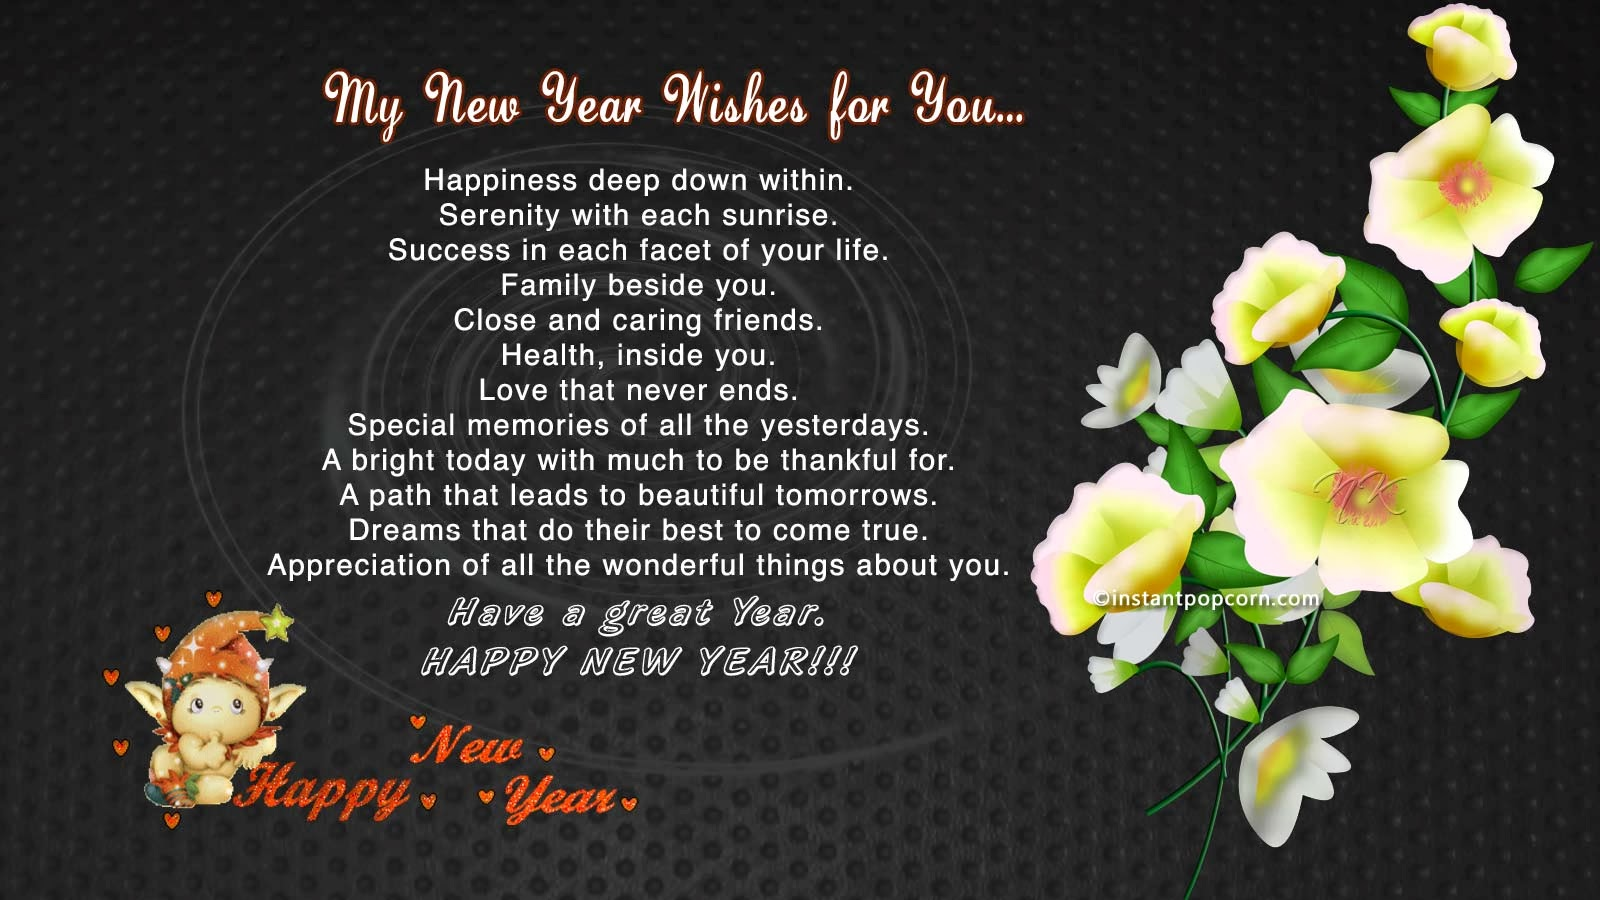 shayri wallpapers: wishes of happy new year